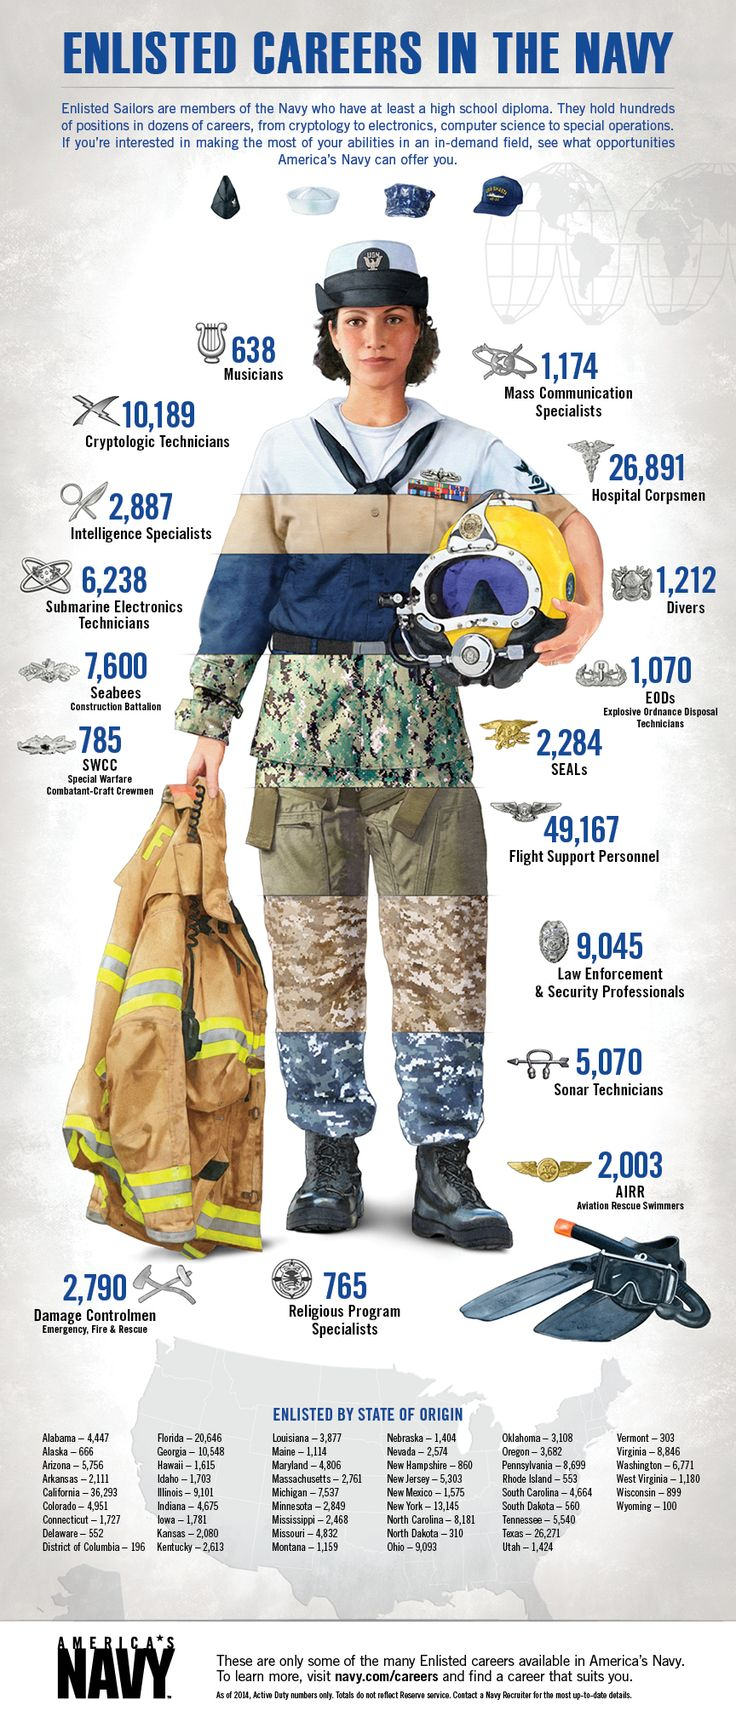 Enlisted Sailors in America's Navy work in various career fields across the world supporting the mission of the Navy. See the size and scope of opportunities available. | #Navy #USNavy #AmericasNavy navy.com